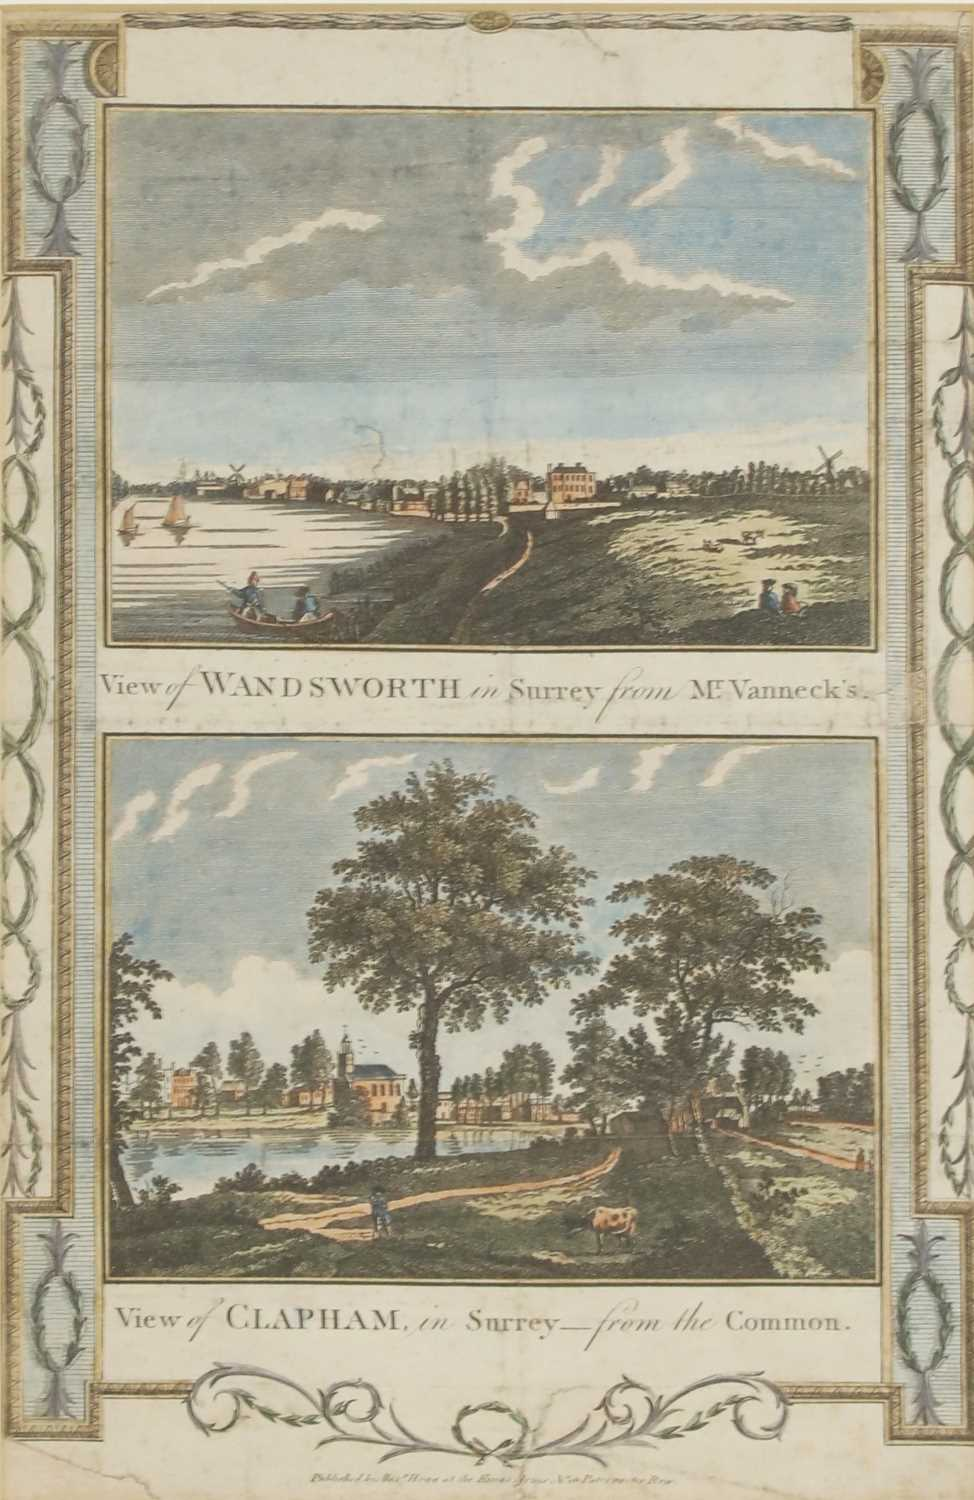 THORNTON'S 'NEW HISTORY & SURVEY OF LONDON AND WESTMINSTER'